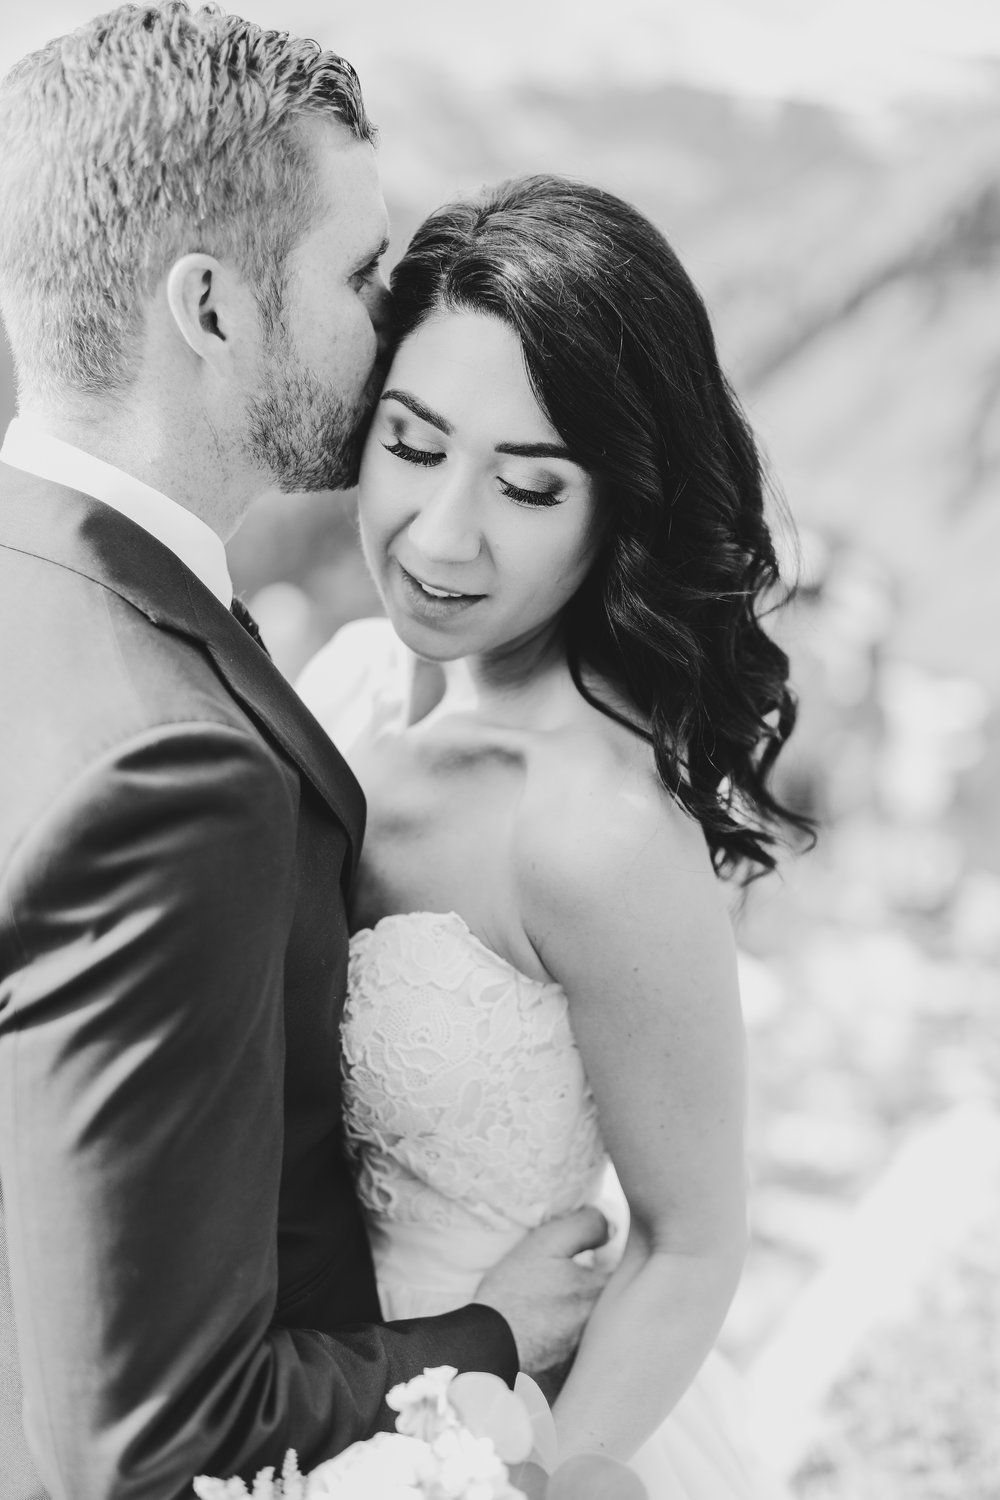 Tom & Rachelle Previews-29.jpg